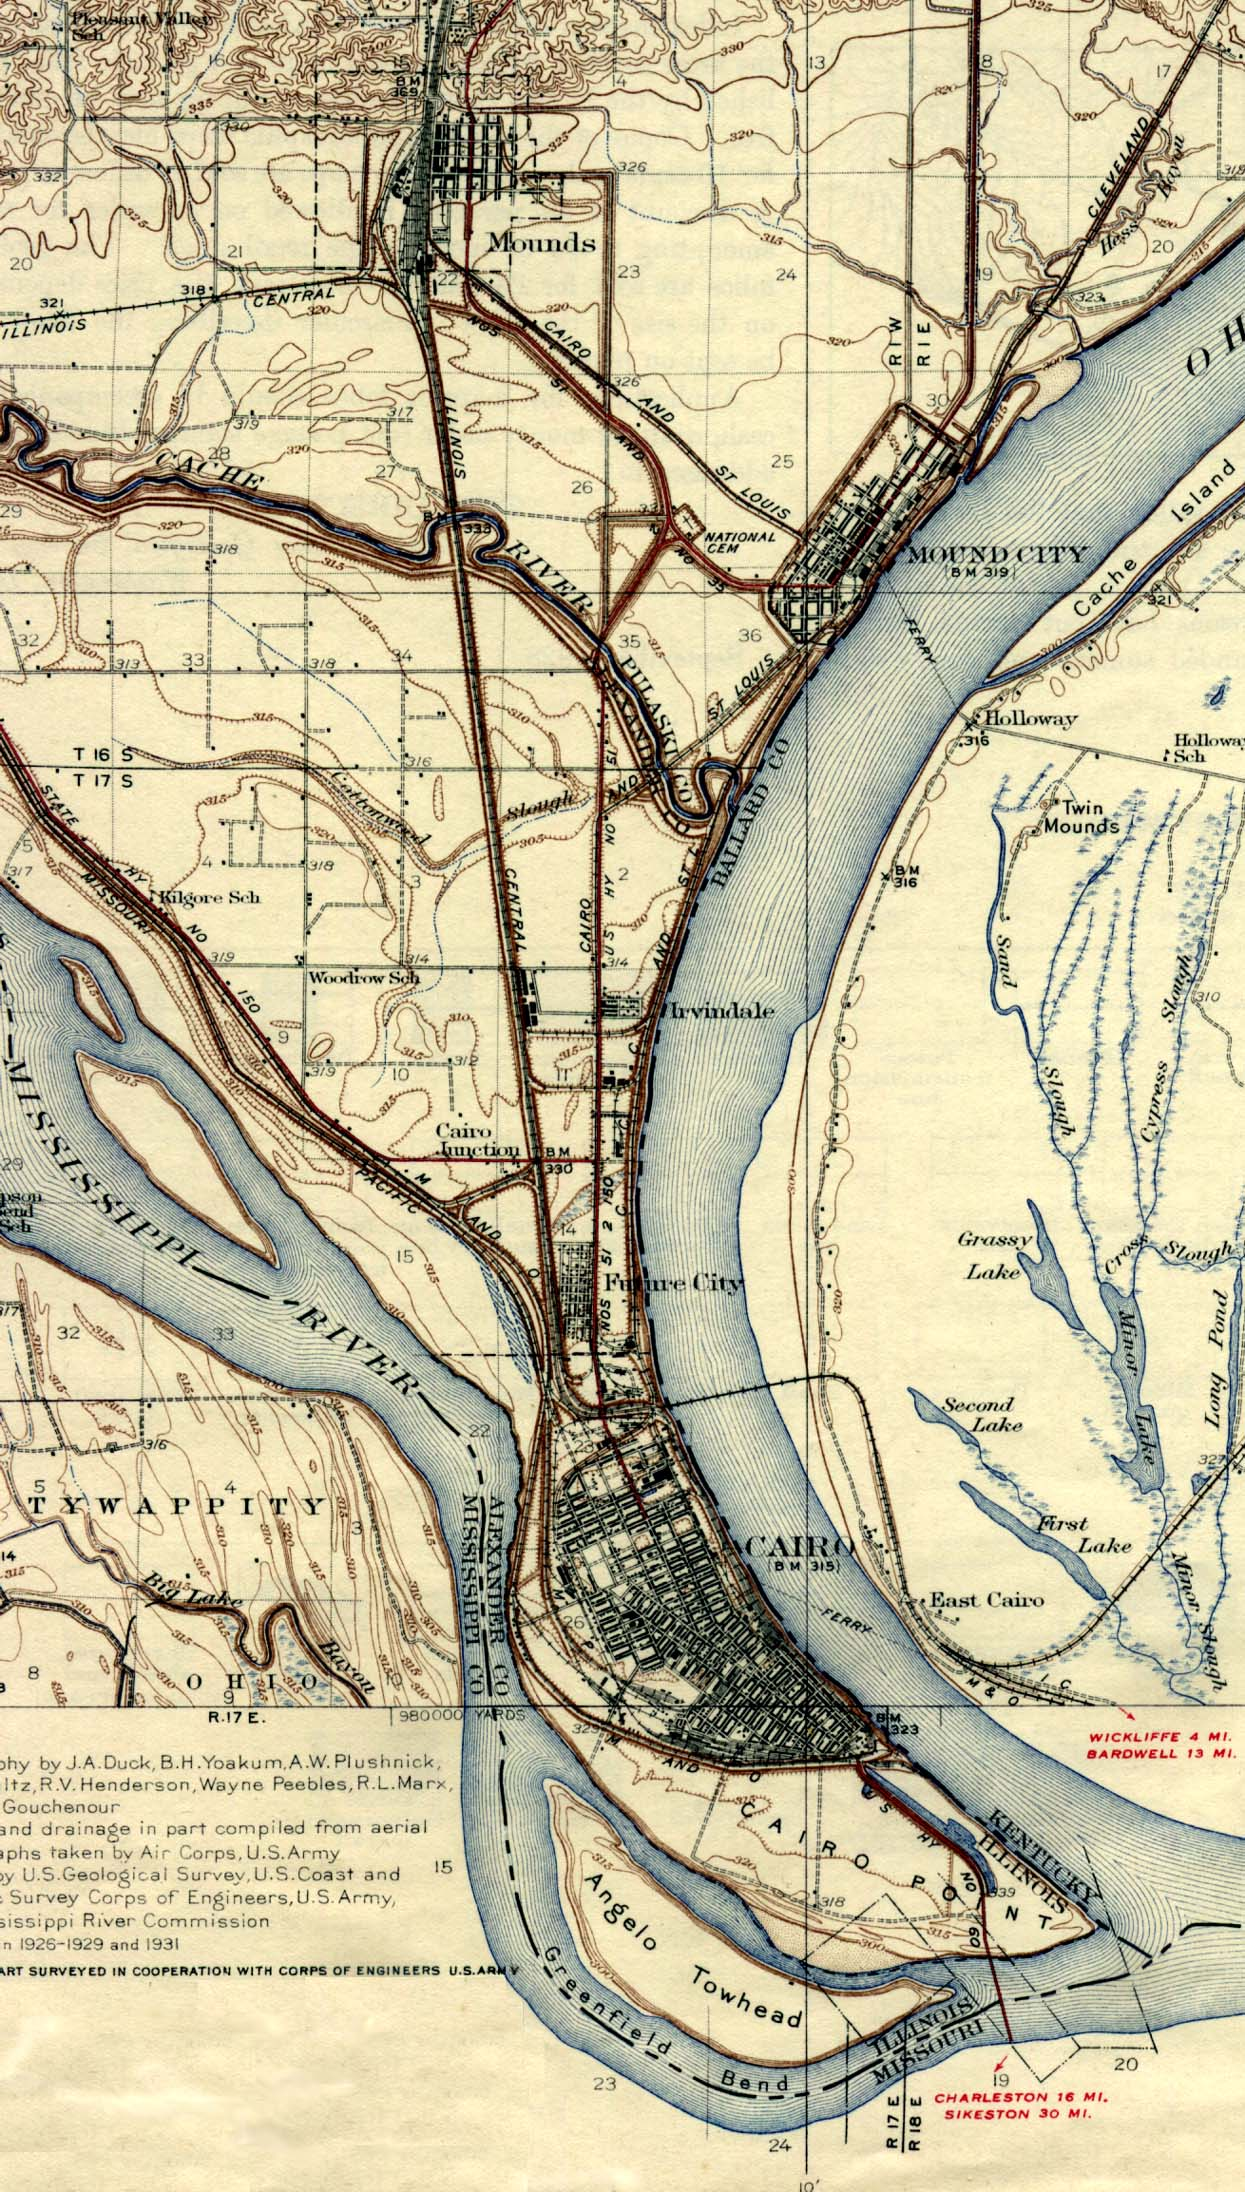 Illinois Maps - Perry-Castañeda Map Collection - UT Liry ... on il counties and cities, il zip code map, il highway map, illinois cities, il county map, il state map, il hwy map,